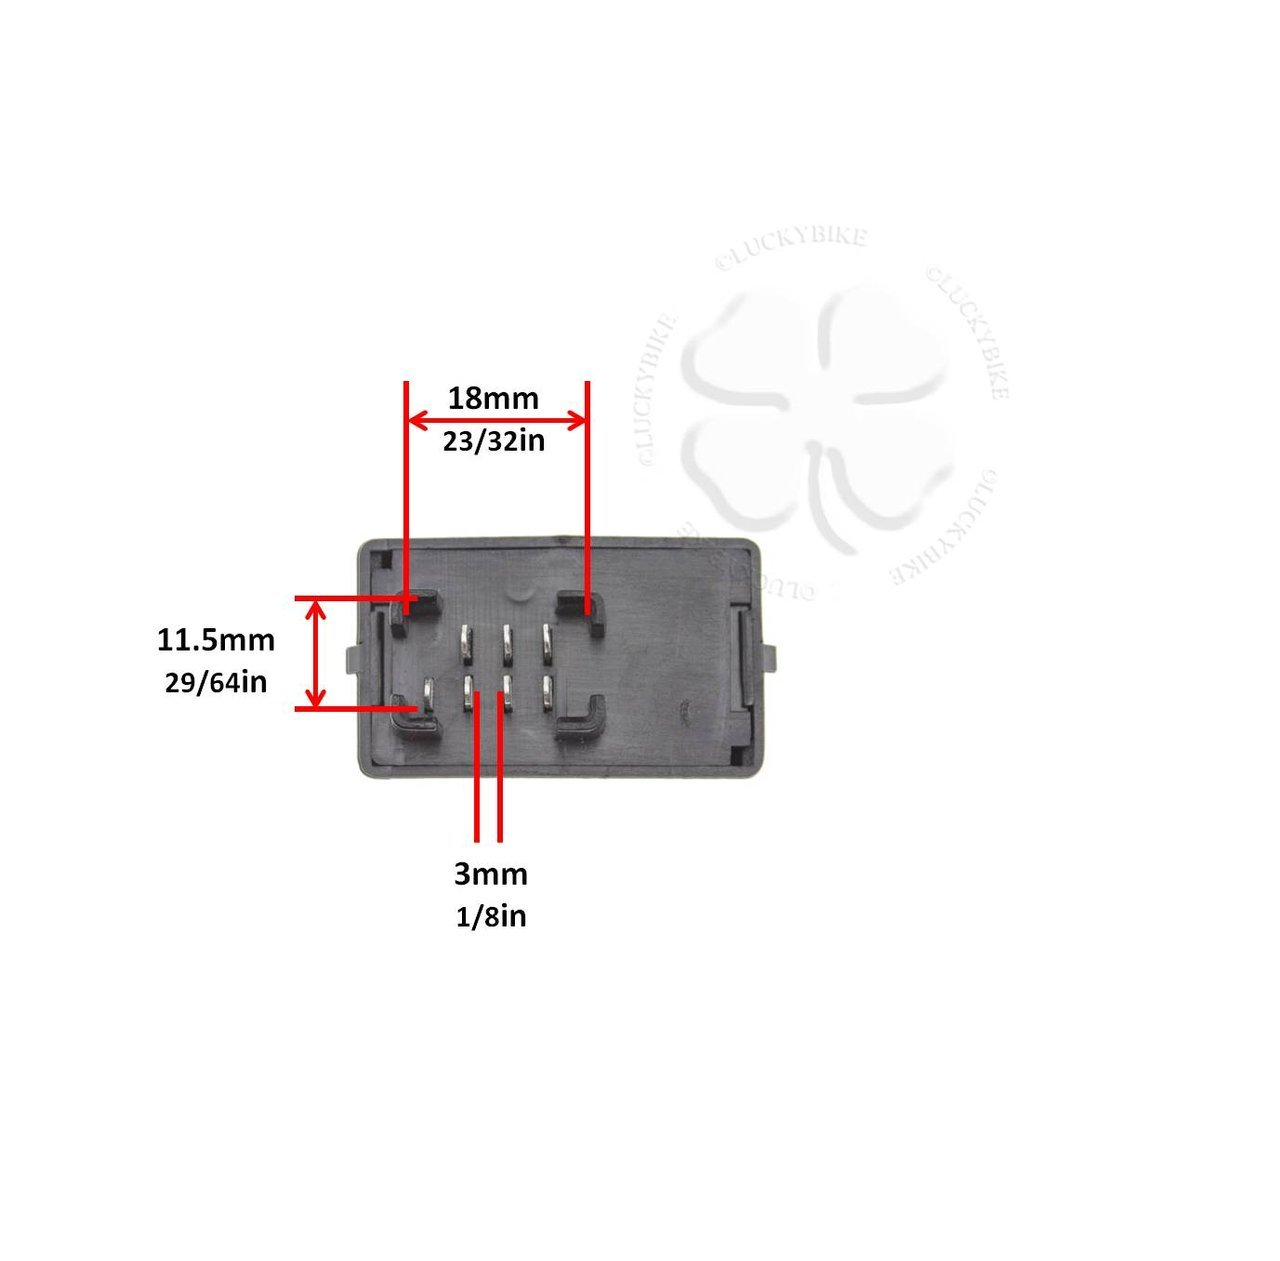 Lighting Flash Controller Suzuki Relay Turn 03 Gsxr 1000 Color Wiring Diagram 2001 2002 2003 2004 2005 2006 2007 2008 2009 2010 2011 2012 2013 2014 600 750 1300 Tlr Bandit 1200 Gsx Automotive